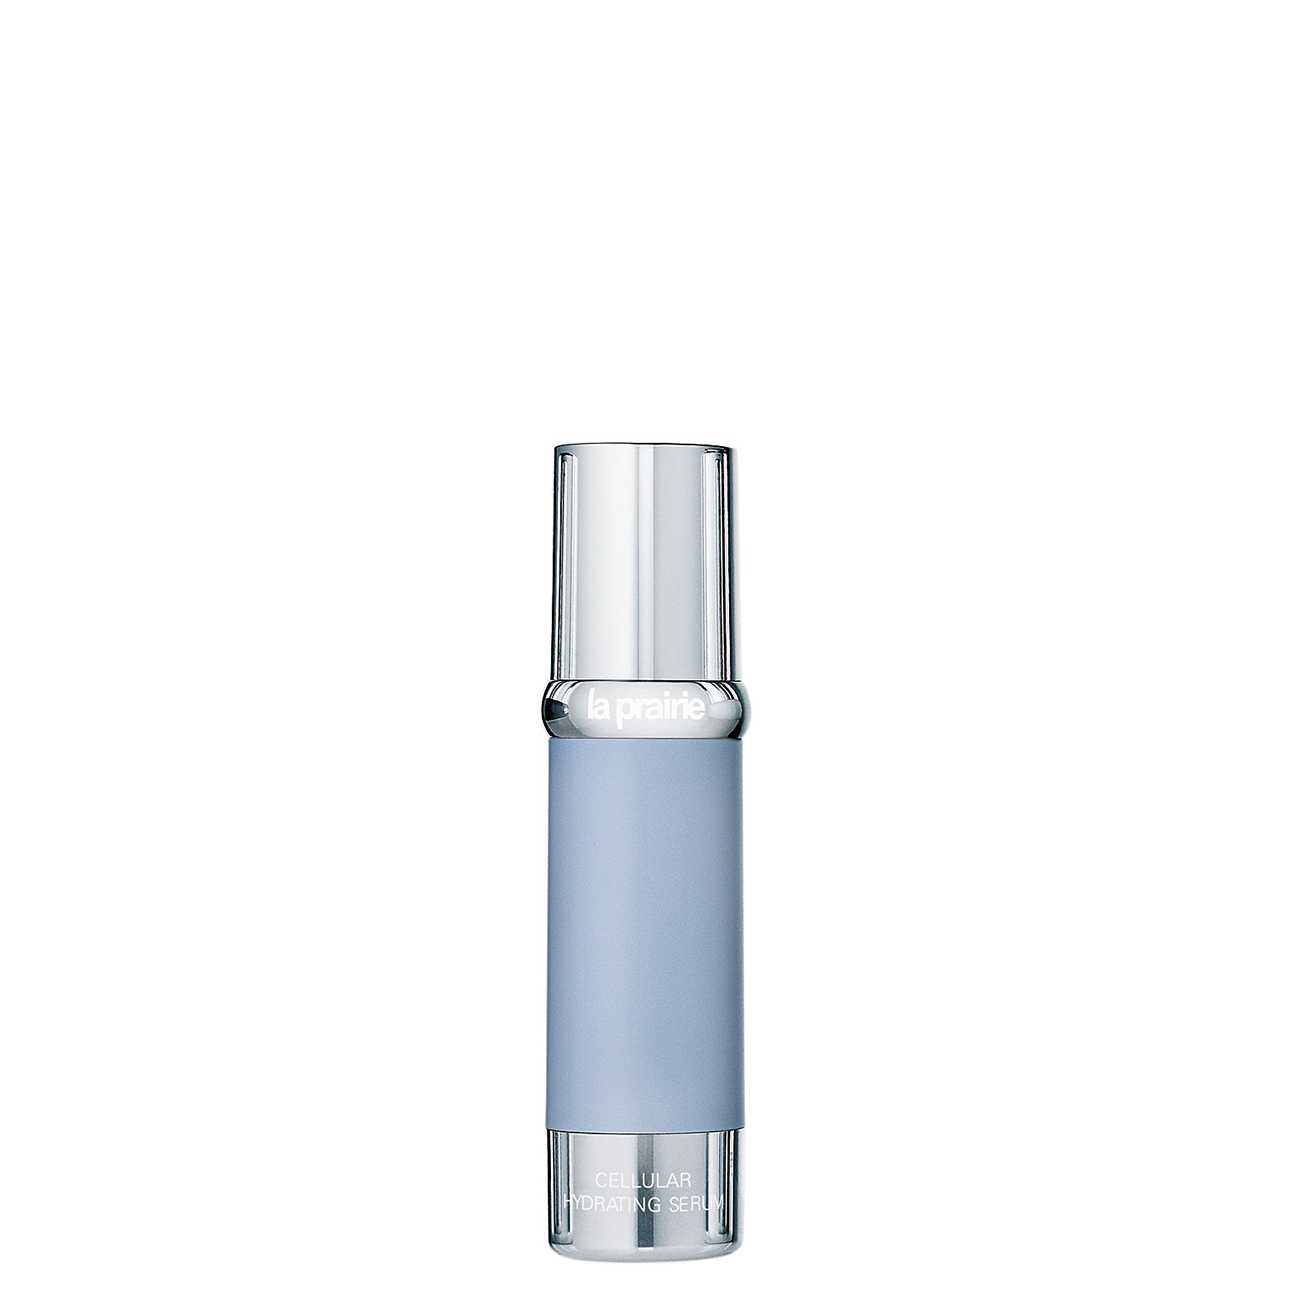 CELLULAR HYDRATING SERUM 30 ML